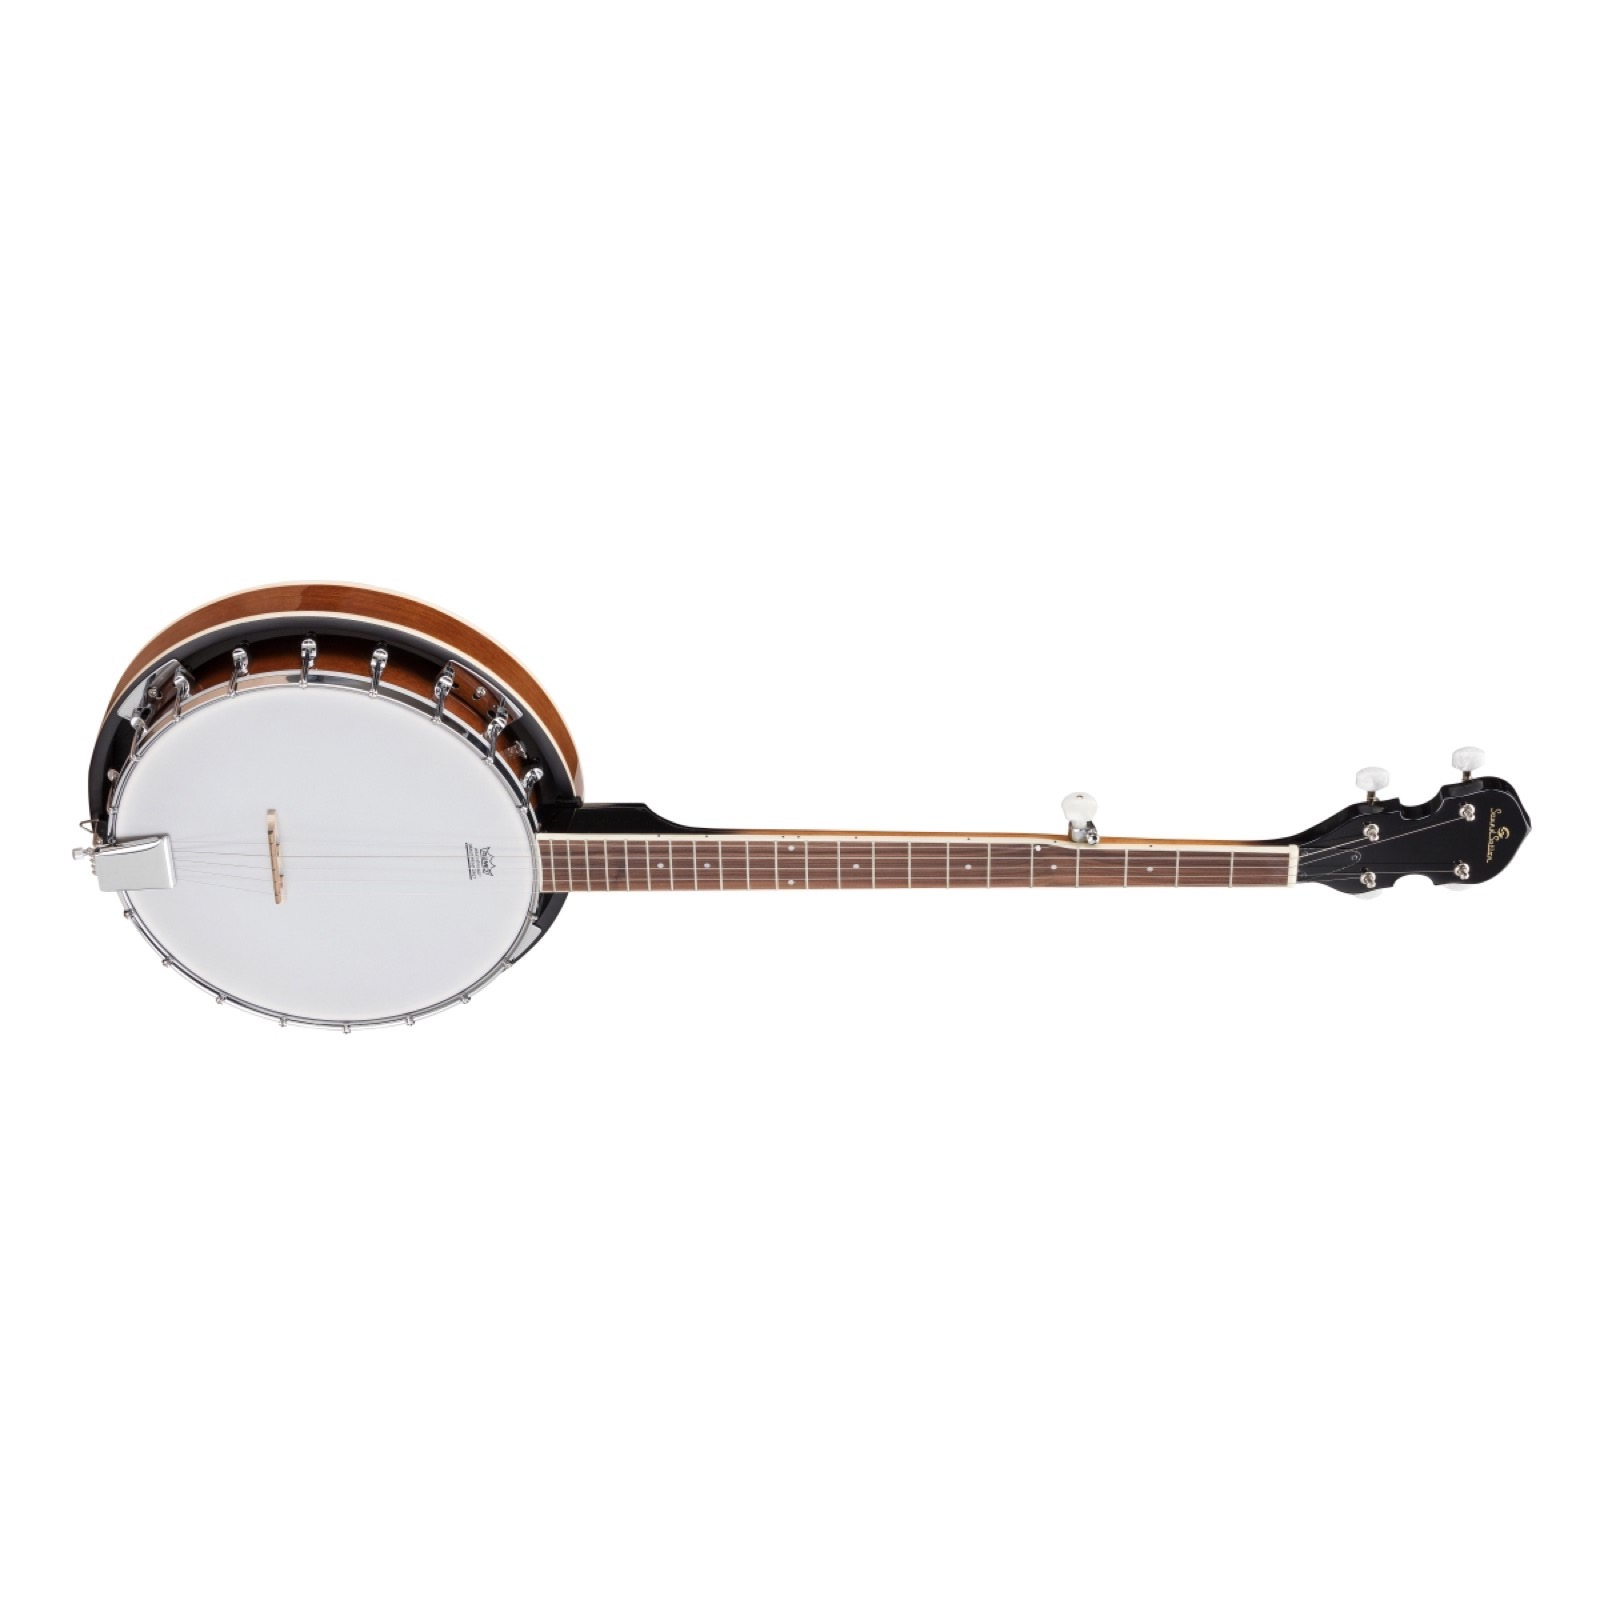 SOUNDSATION-SBJ40-BANJO-sku-19448